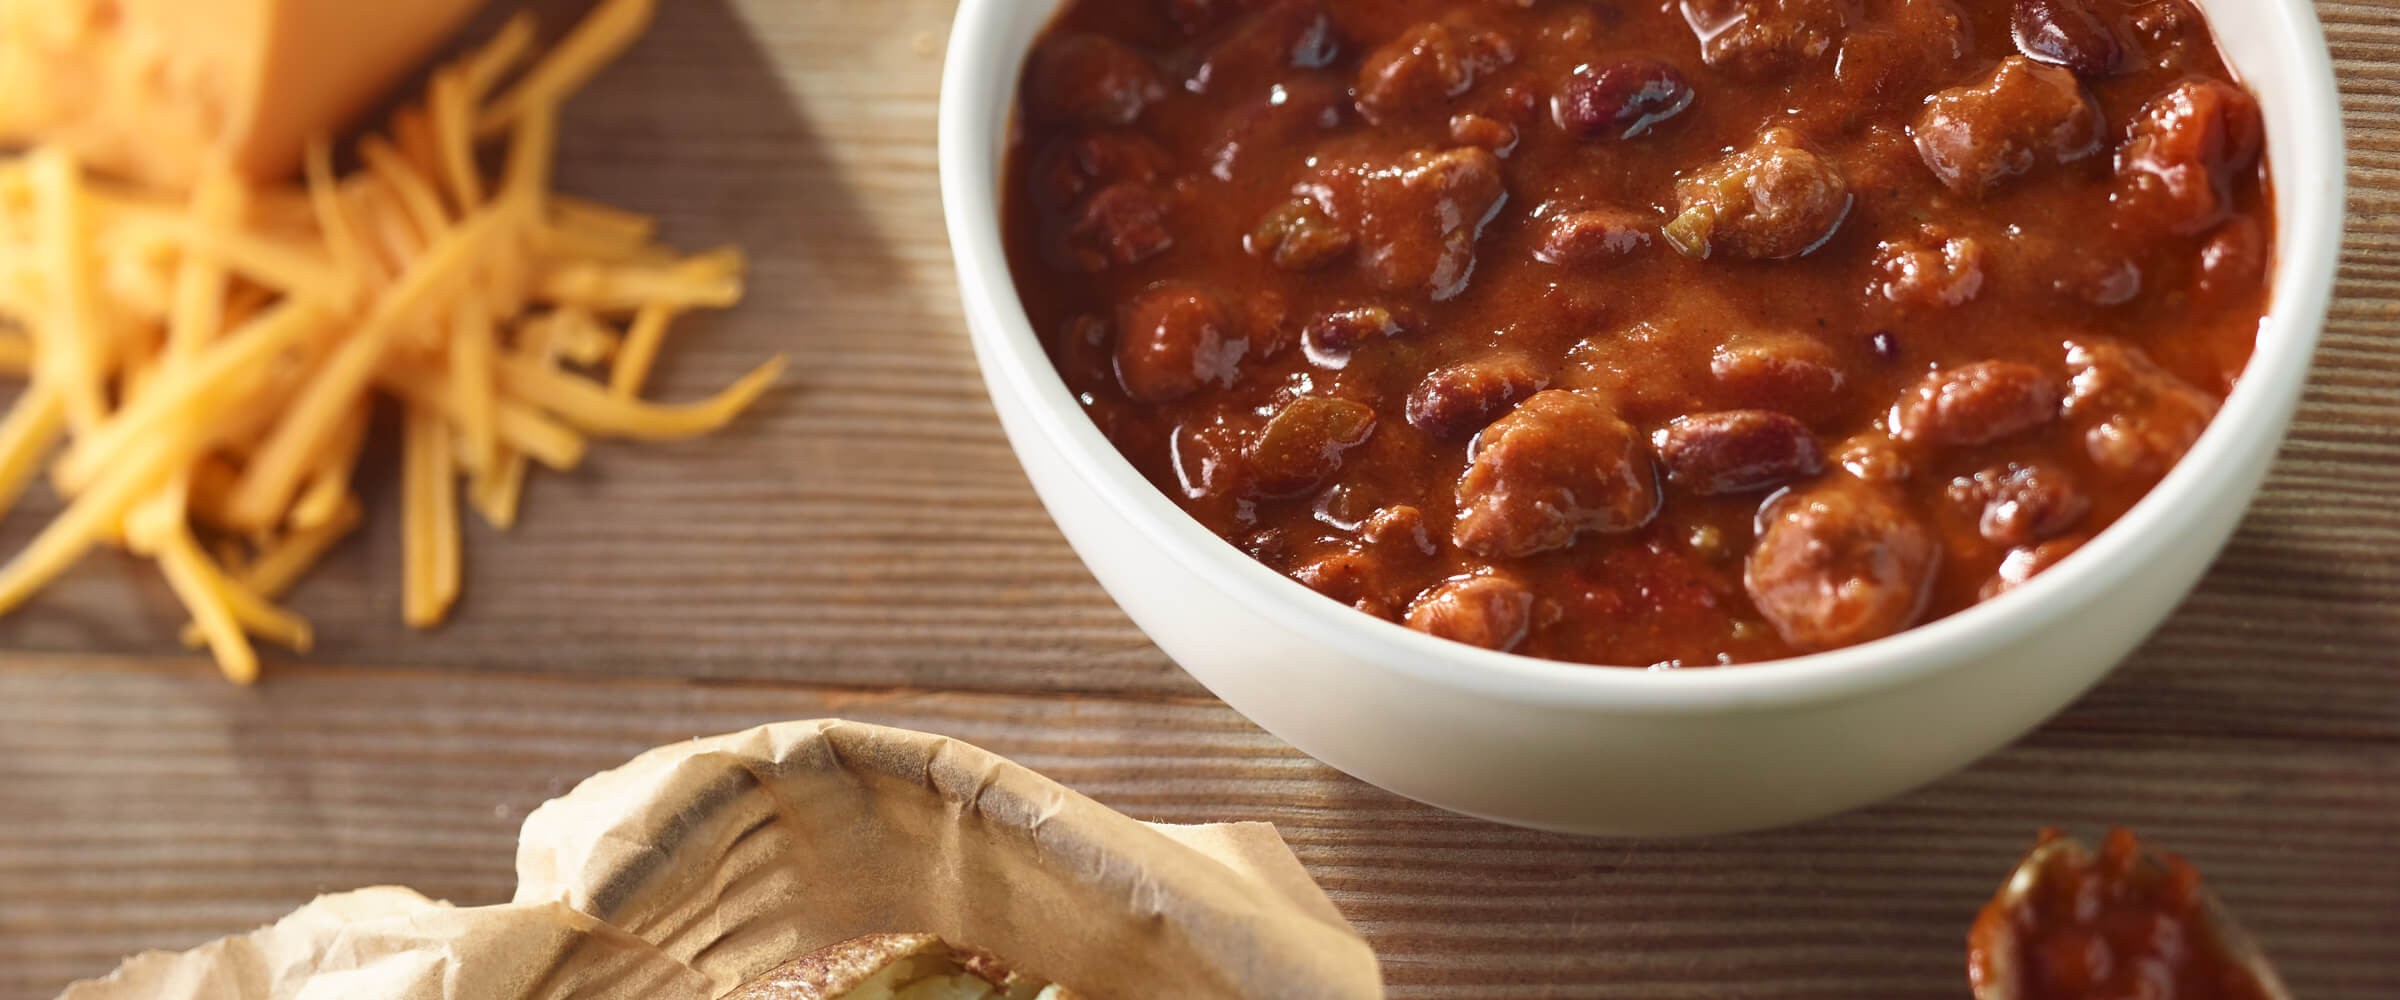 Stagg® chili